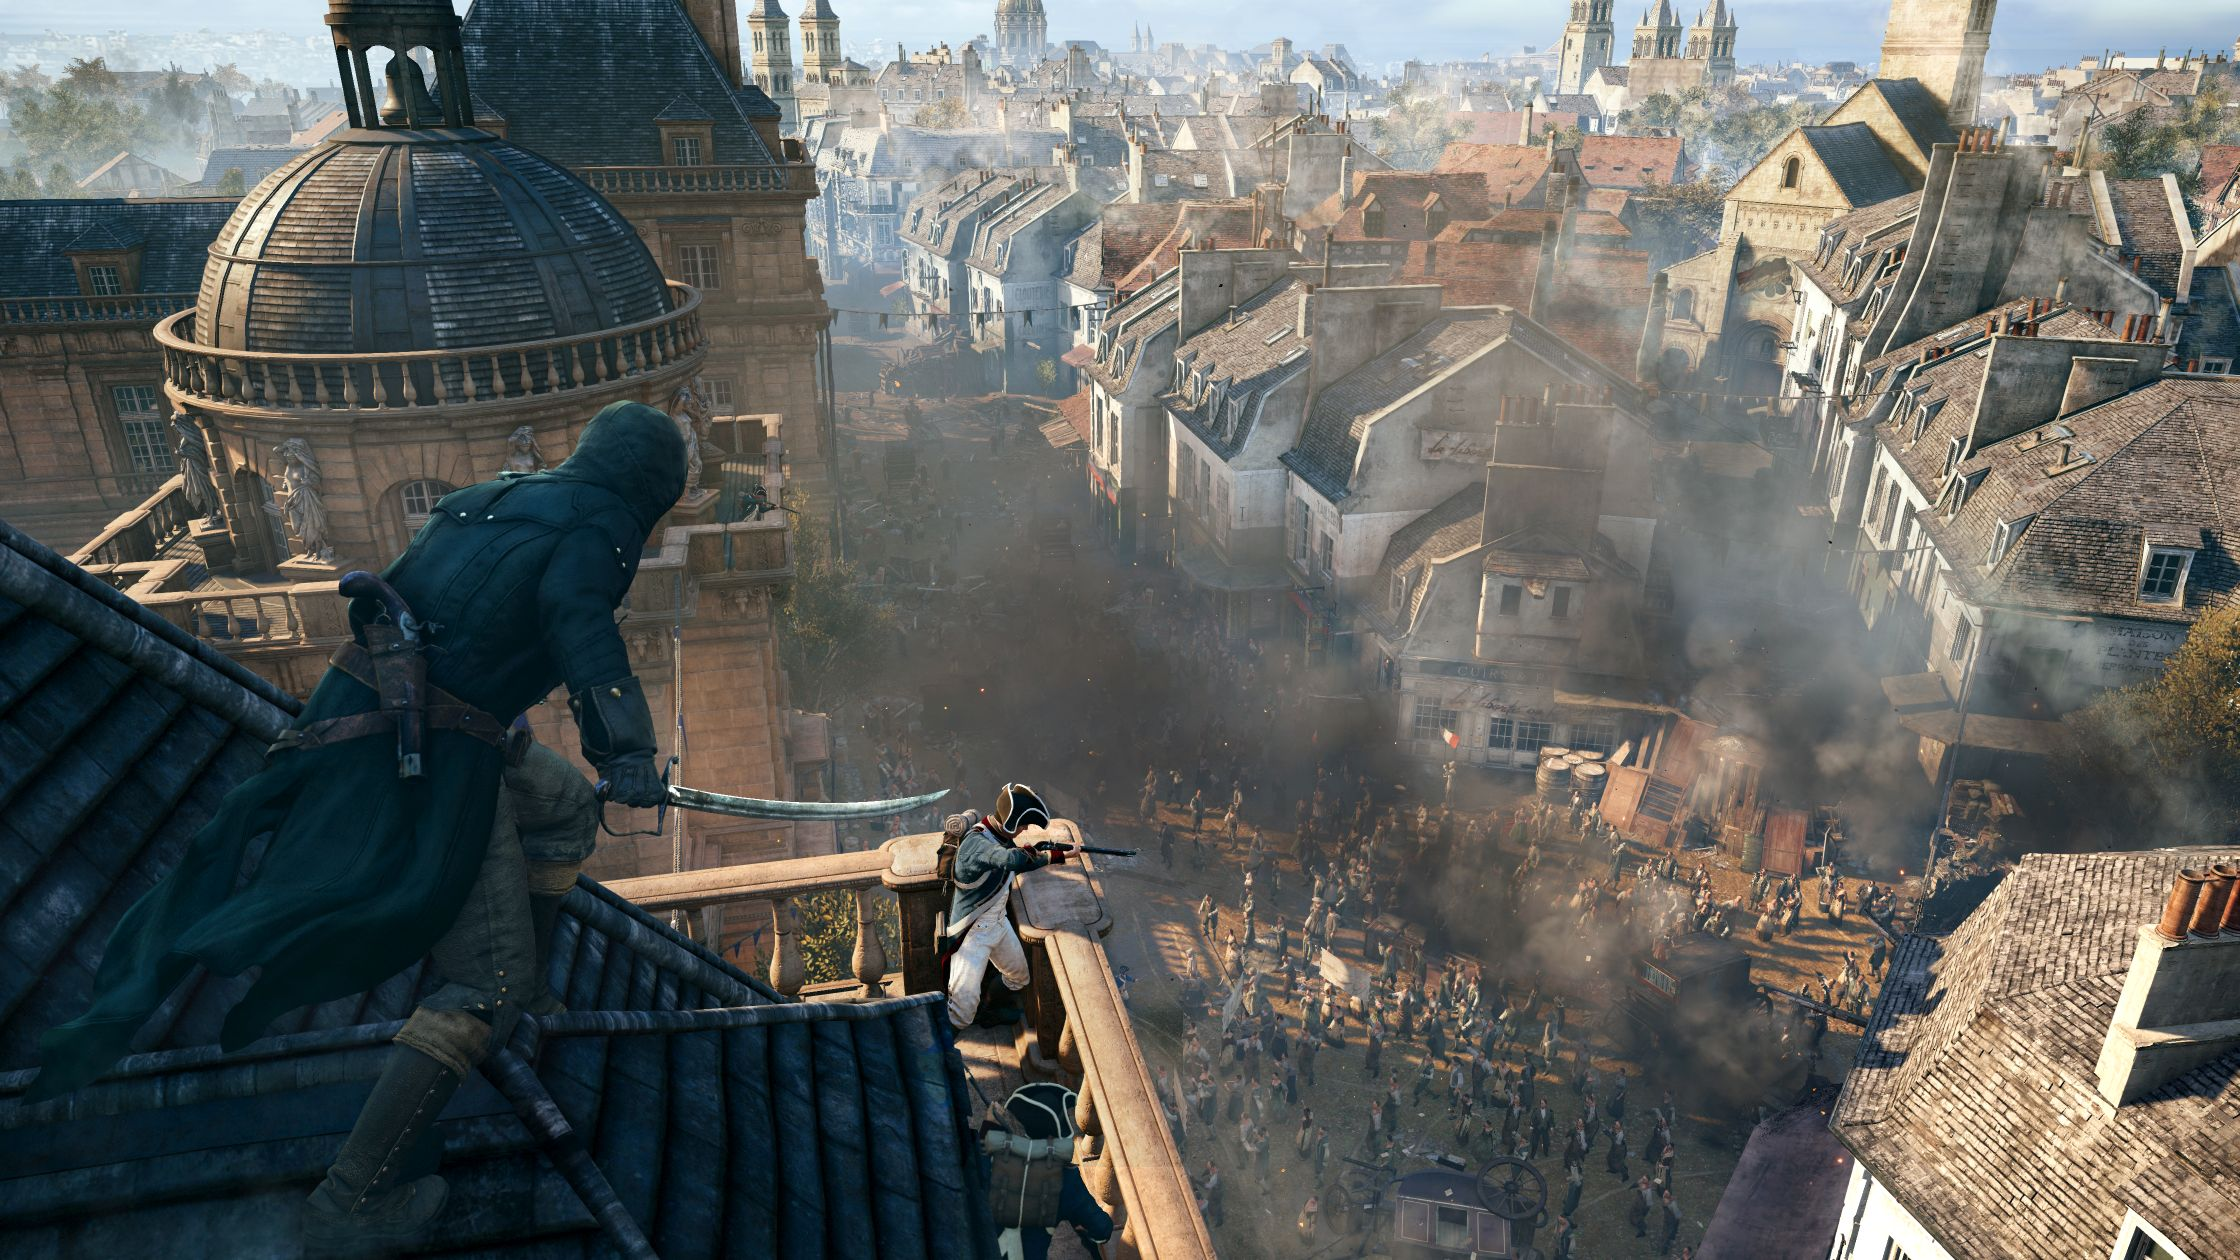 Assassins_Creed_Unity_LuxembourgRiot_1405346141